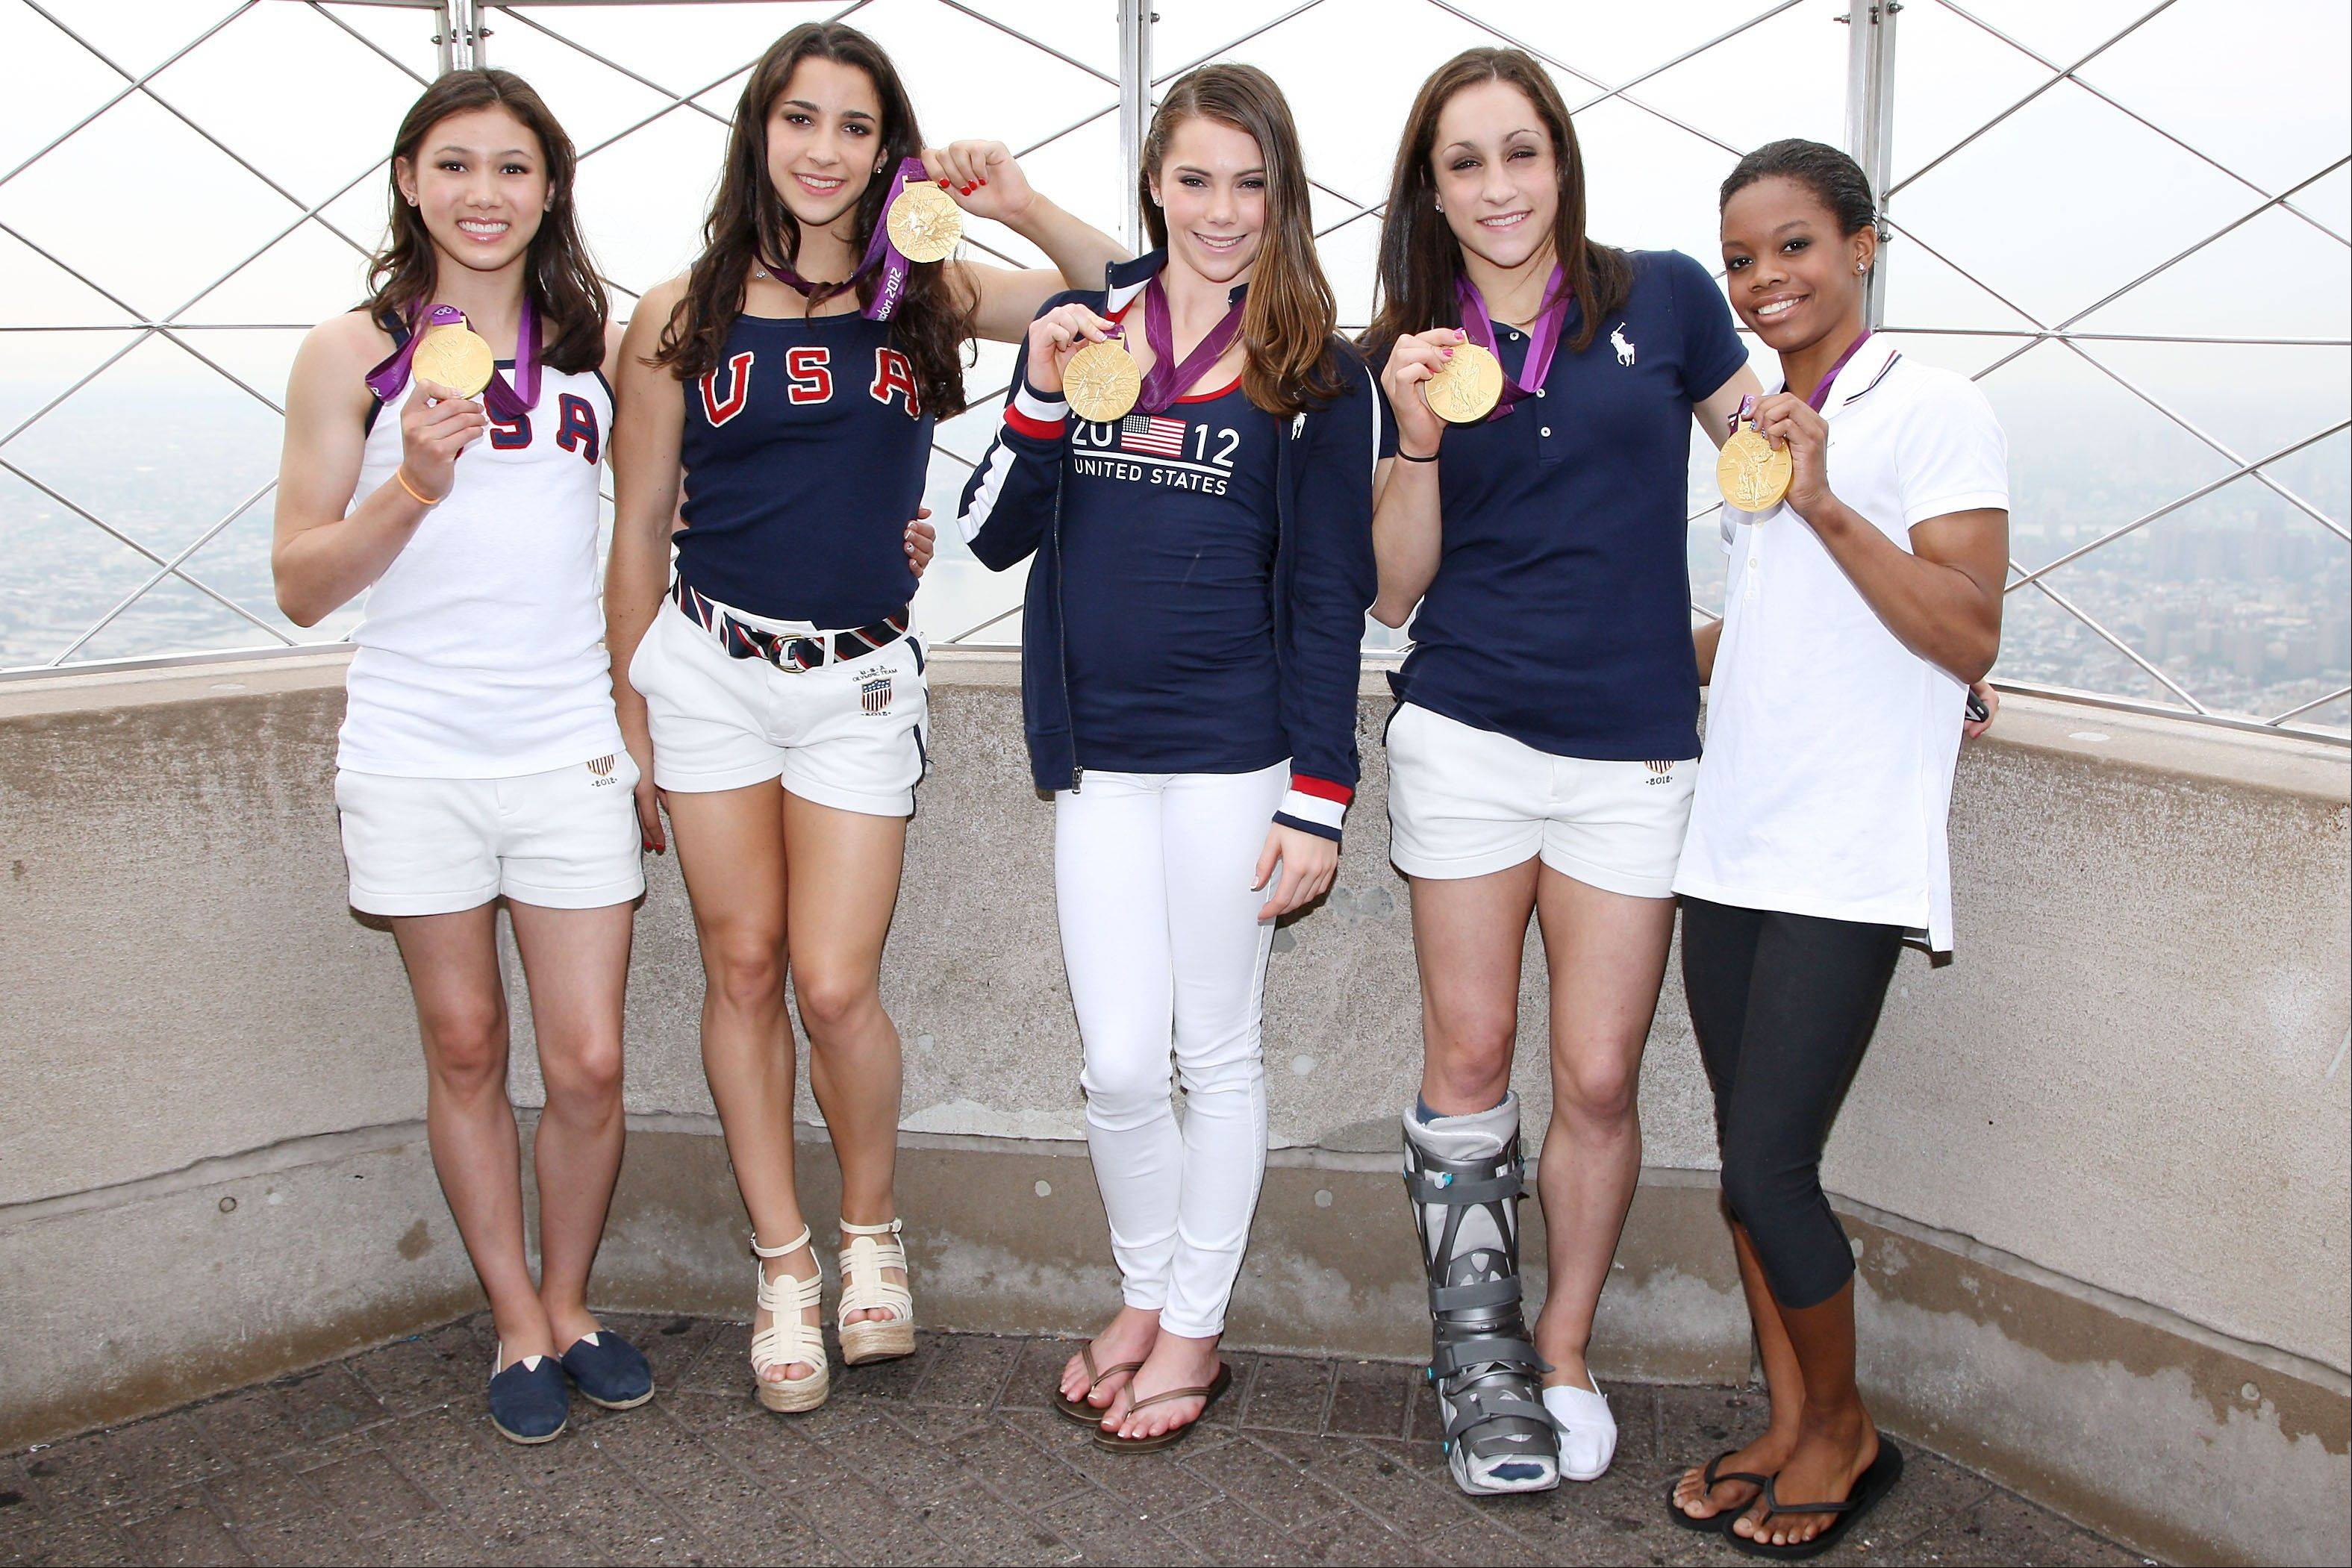 The gold medal-winning U.S. Women's Gymnastics Team, from left, Kyla Ross, Aly Raisman, McKayla Marone, Jordyn Wieber and Gabby Douglas have been a whirlwind publicity tour since they returned from the Summer Olympics in London.